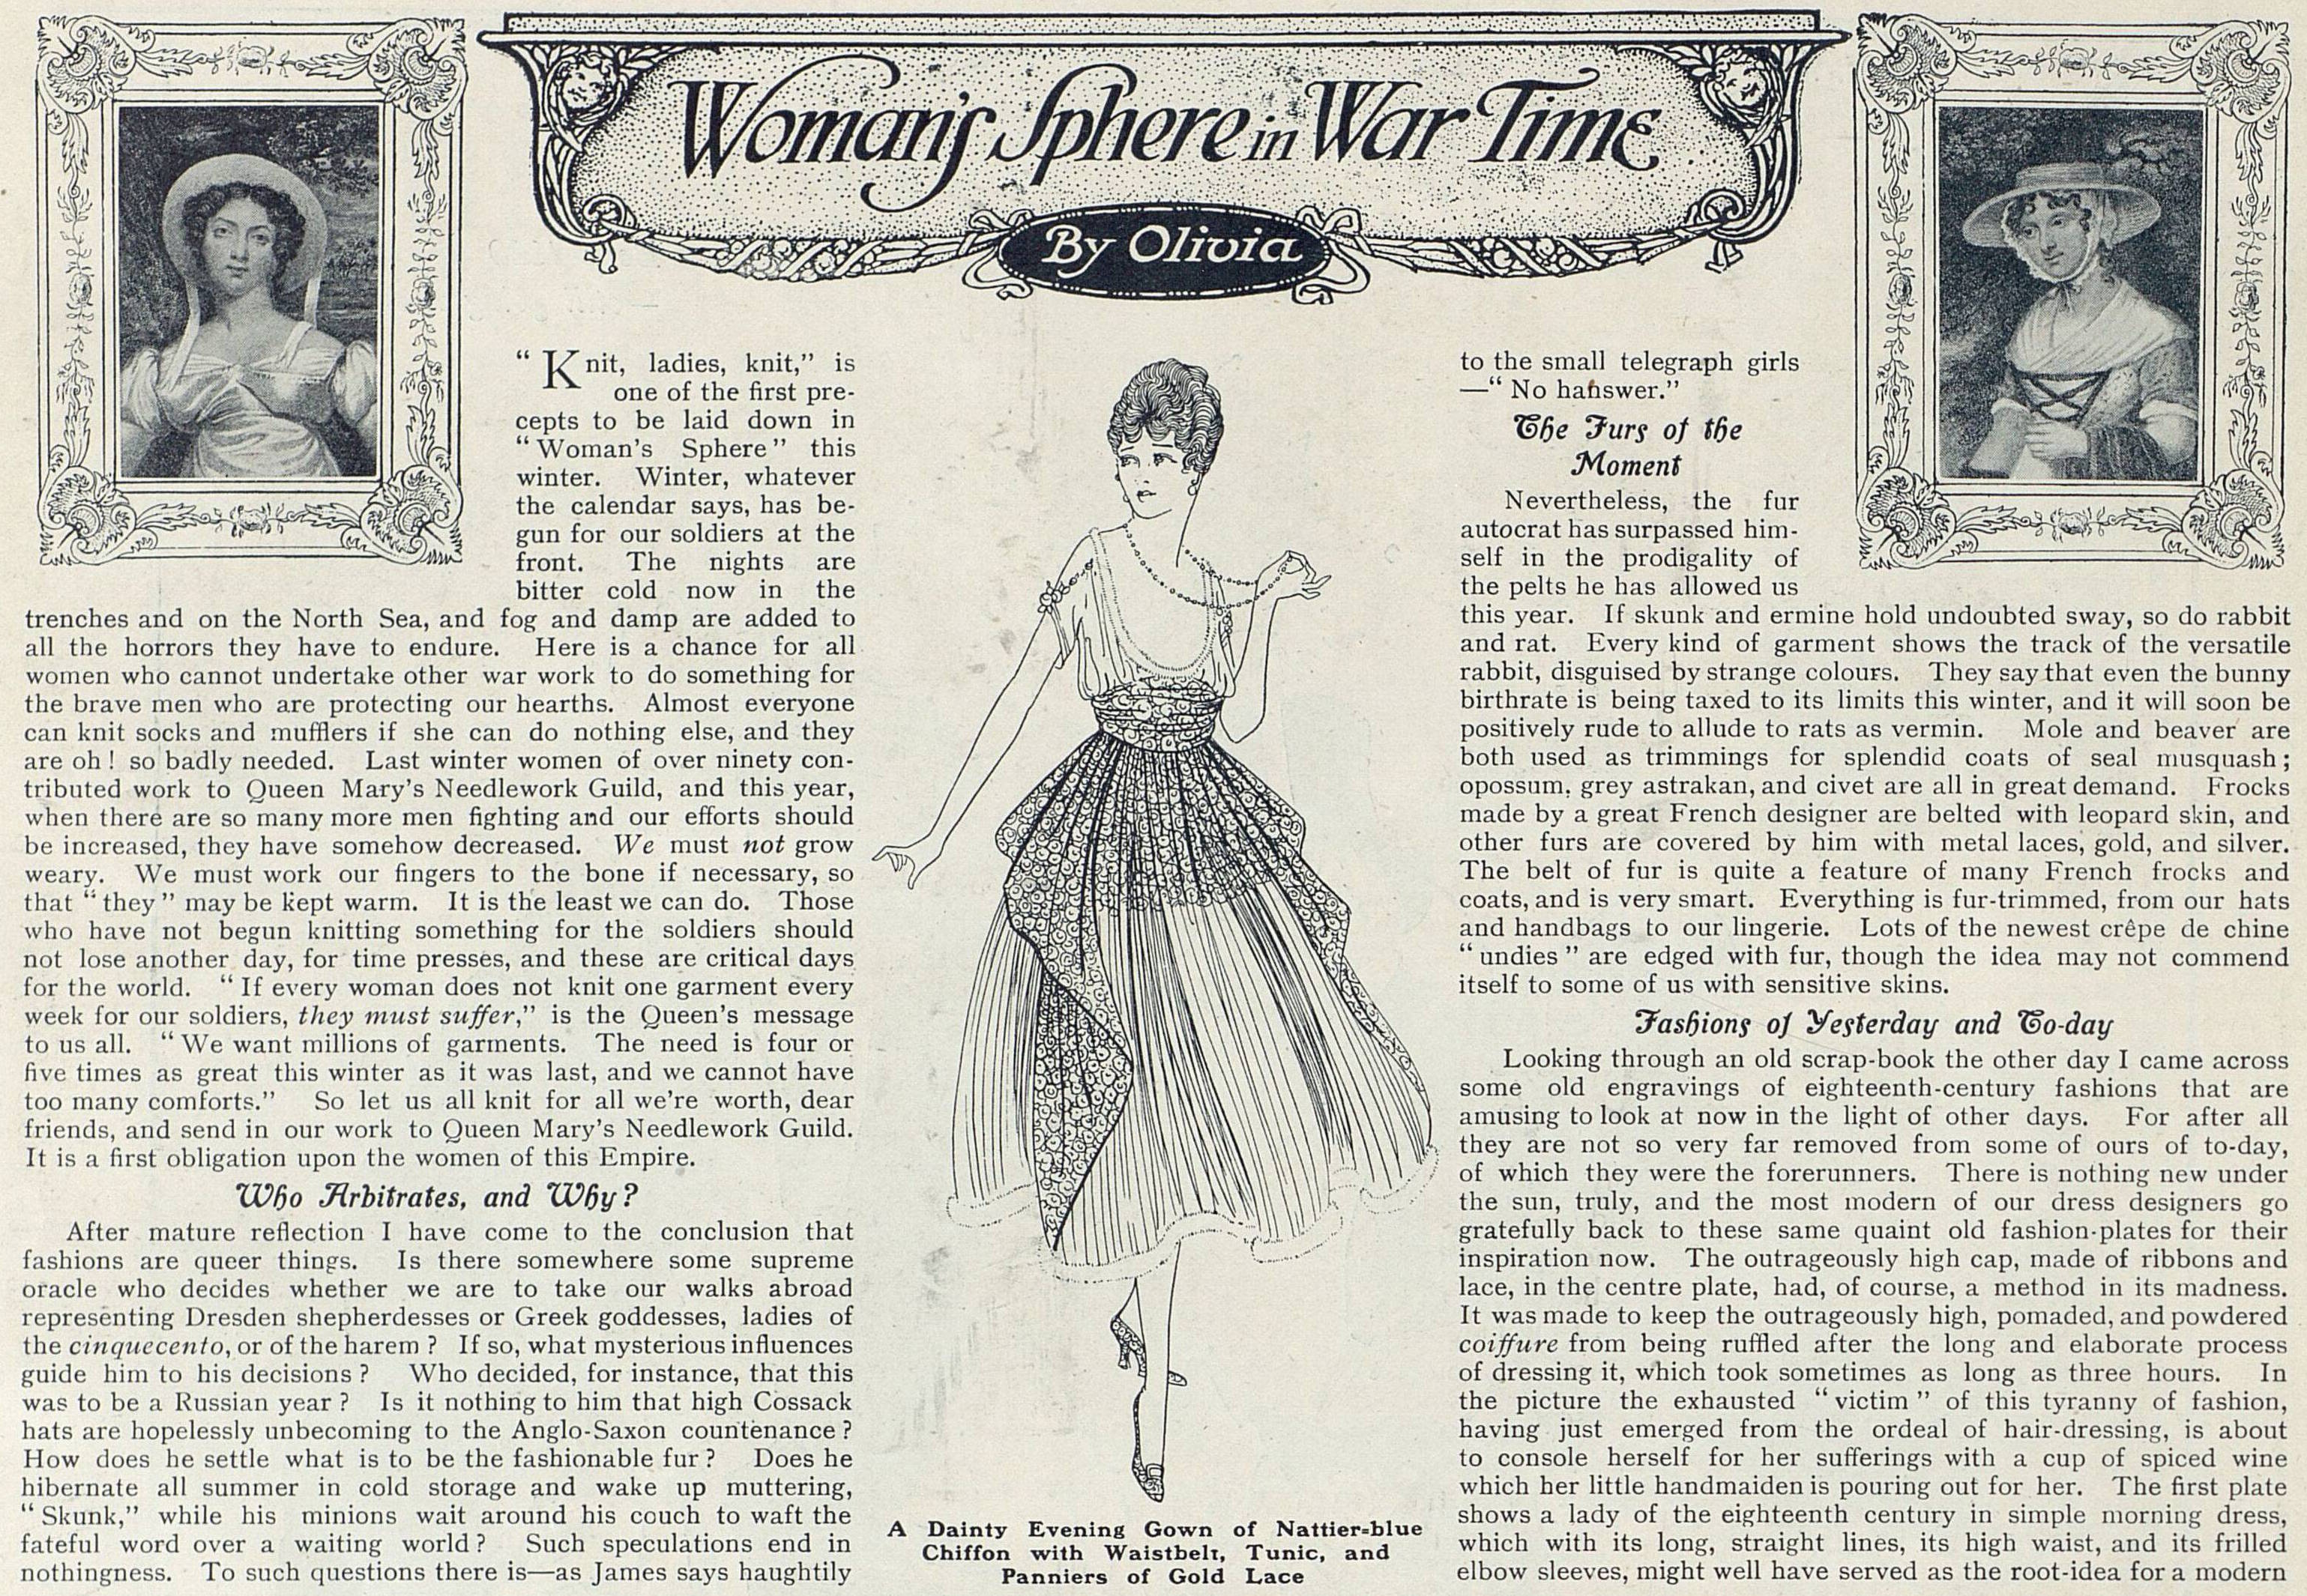 WomansSphereInWarTime_4Nov1916